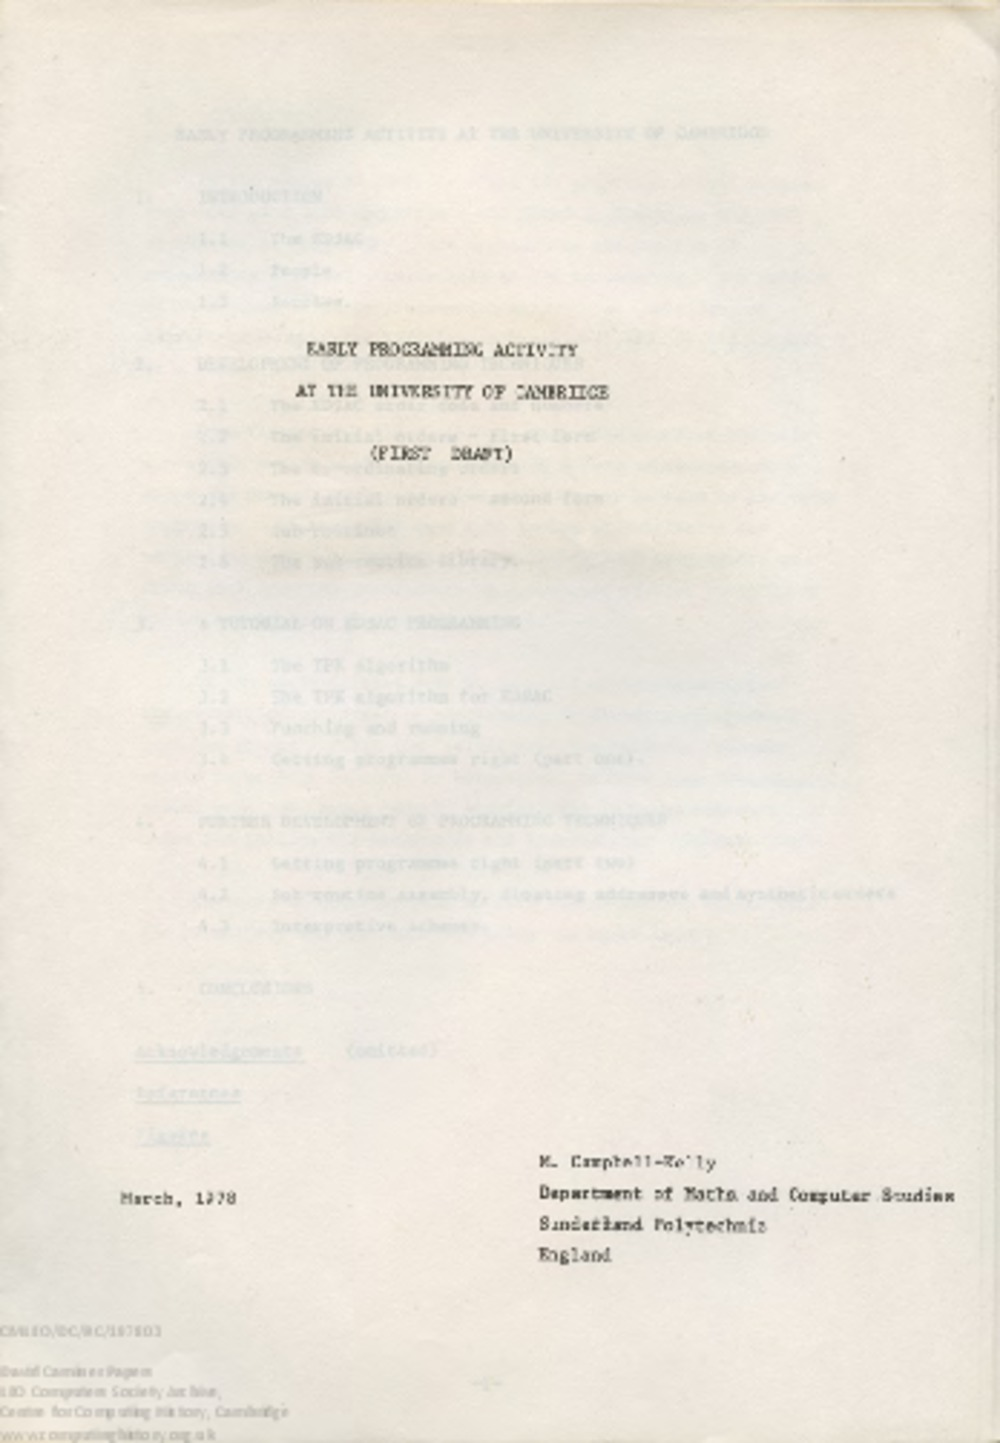 Article: 58515 Campbell-Kelly, Early Programming Activity at the University of Cambridge (Mar 1978)